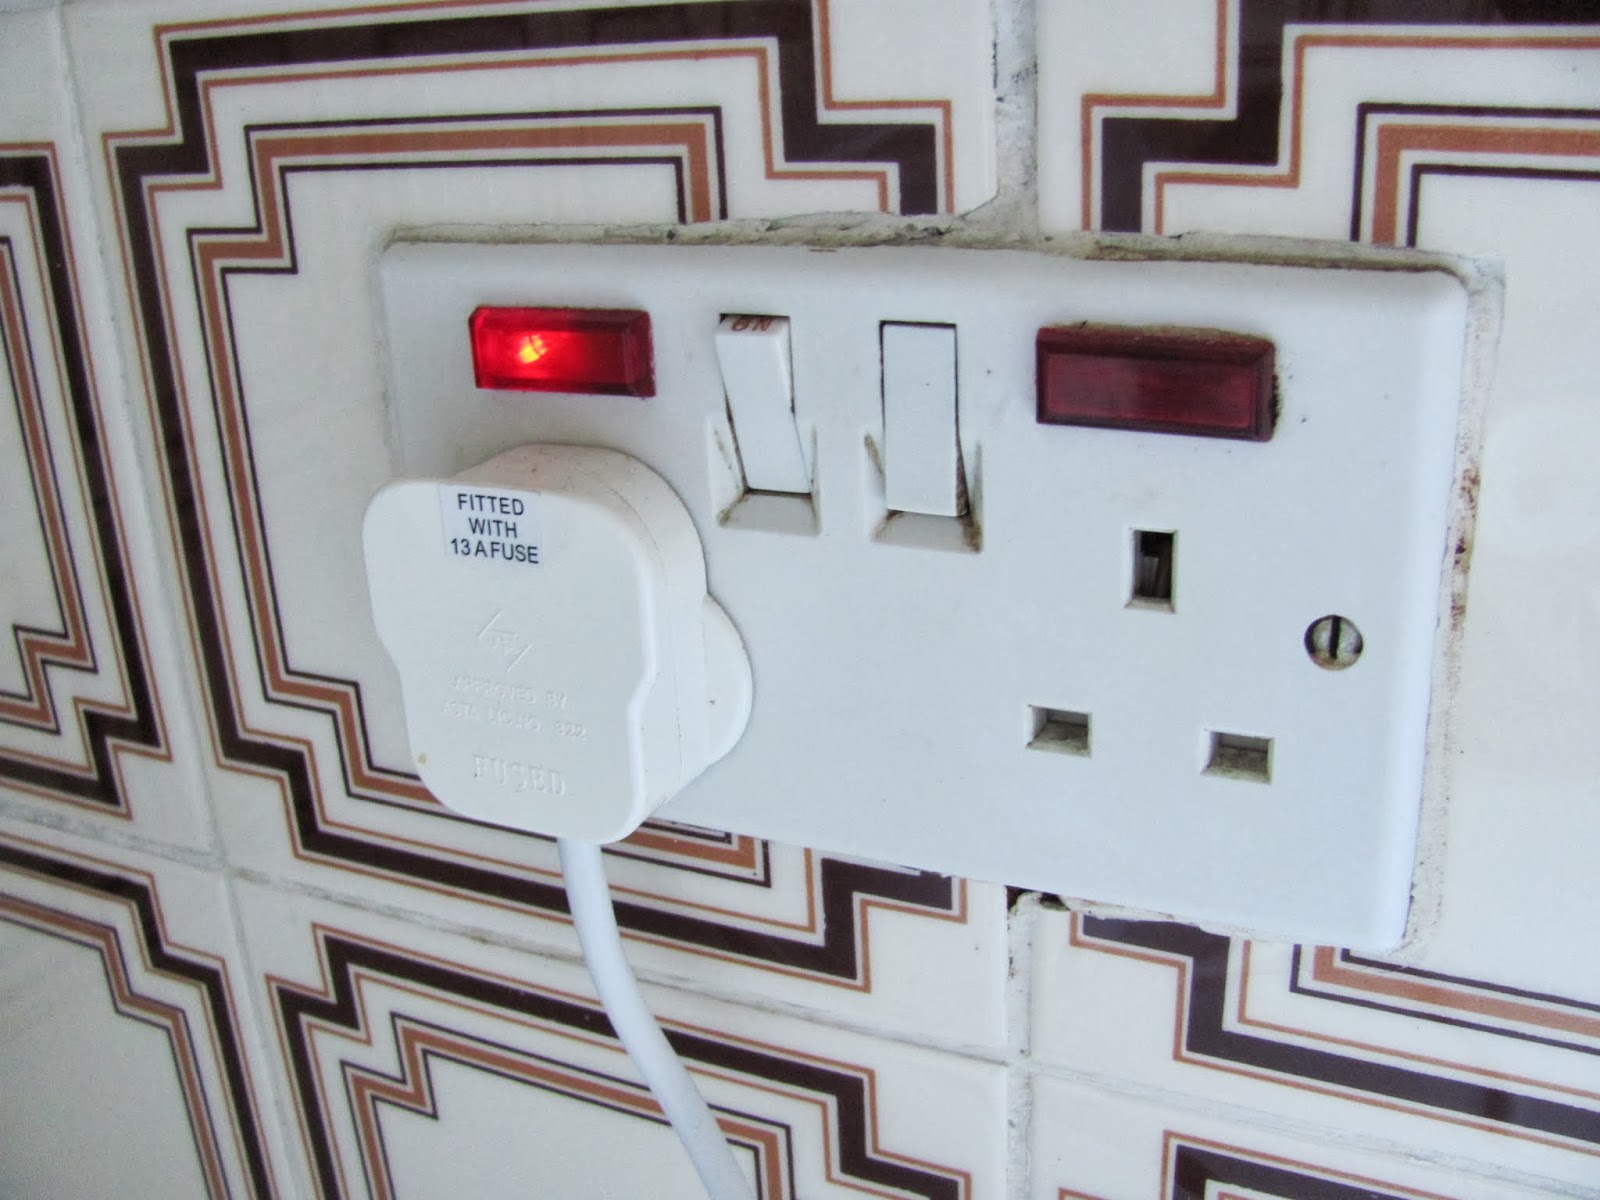 The kitchen power sockets are activated by switches and indicator lights in Dublin, Ireland